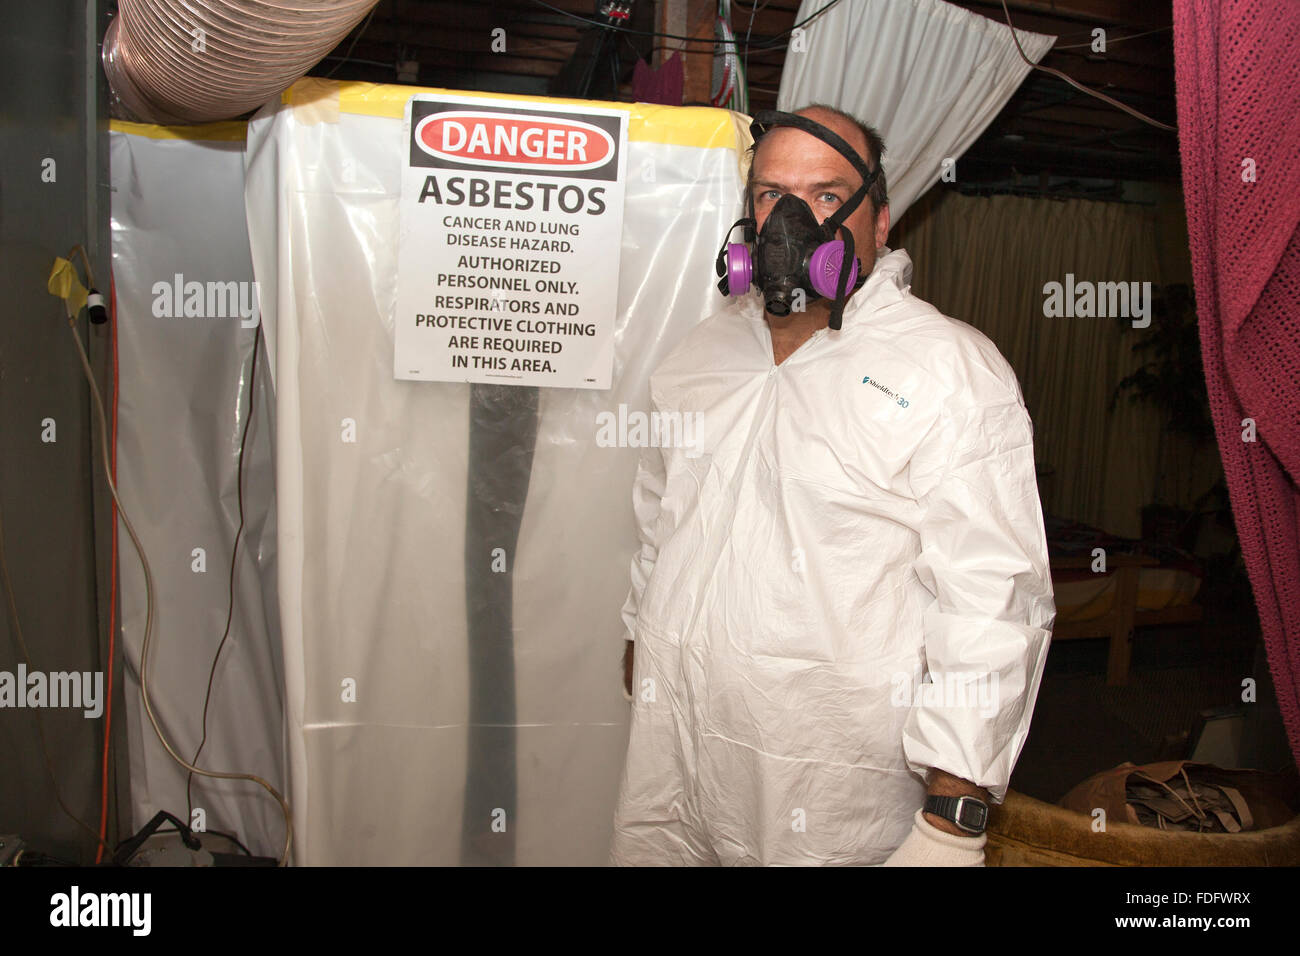 Workman in protective mask and body suit ready to remove asbestos insulation from an old furnace. St Paul Minnesota - Stock Image